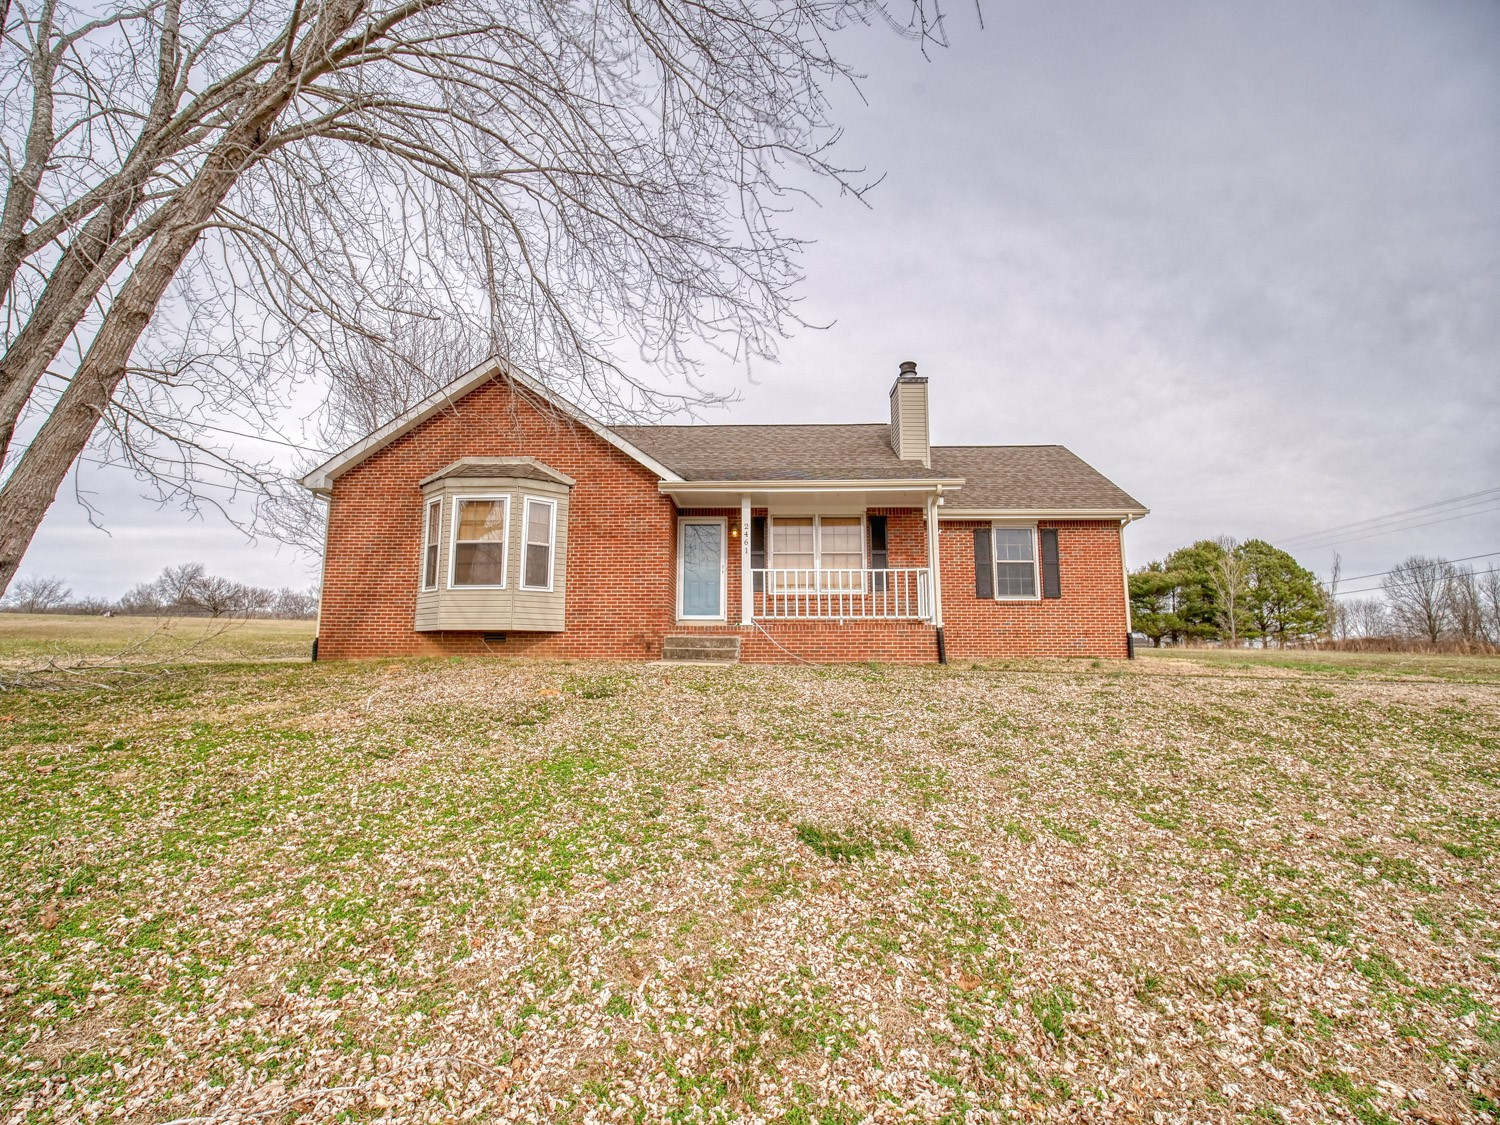 2461 Chester Harris Rd, Woodlawn, TN 37191 - Woodlawn, TN real estate listing